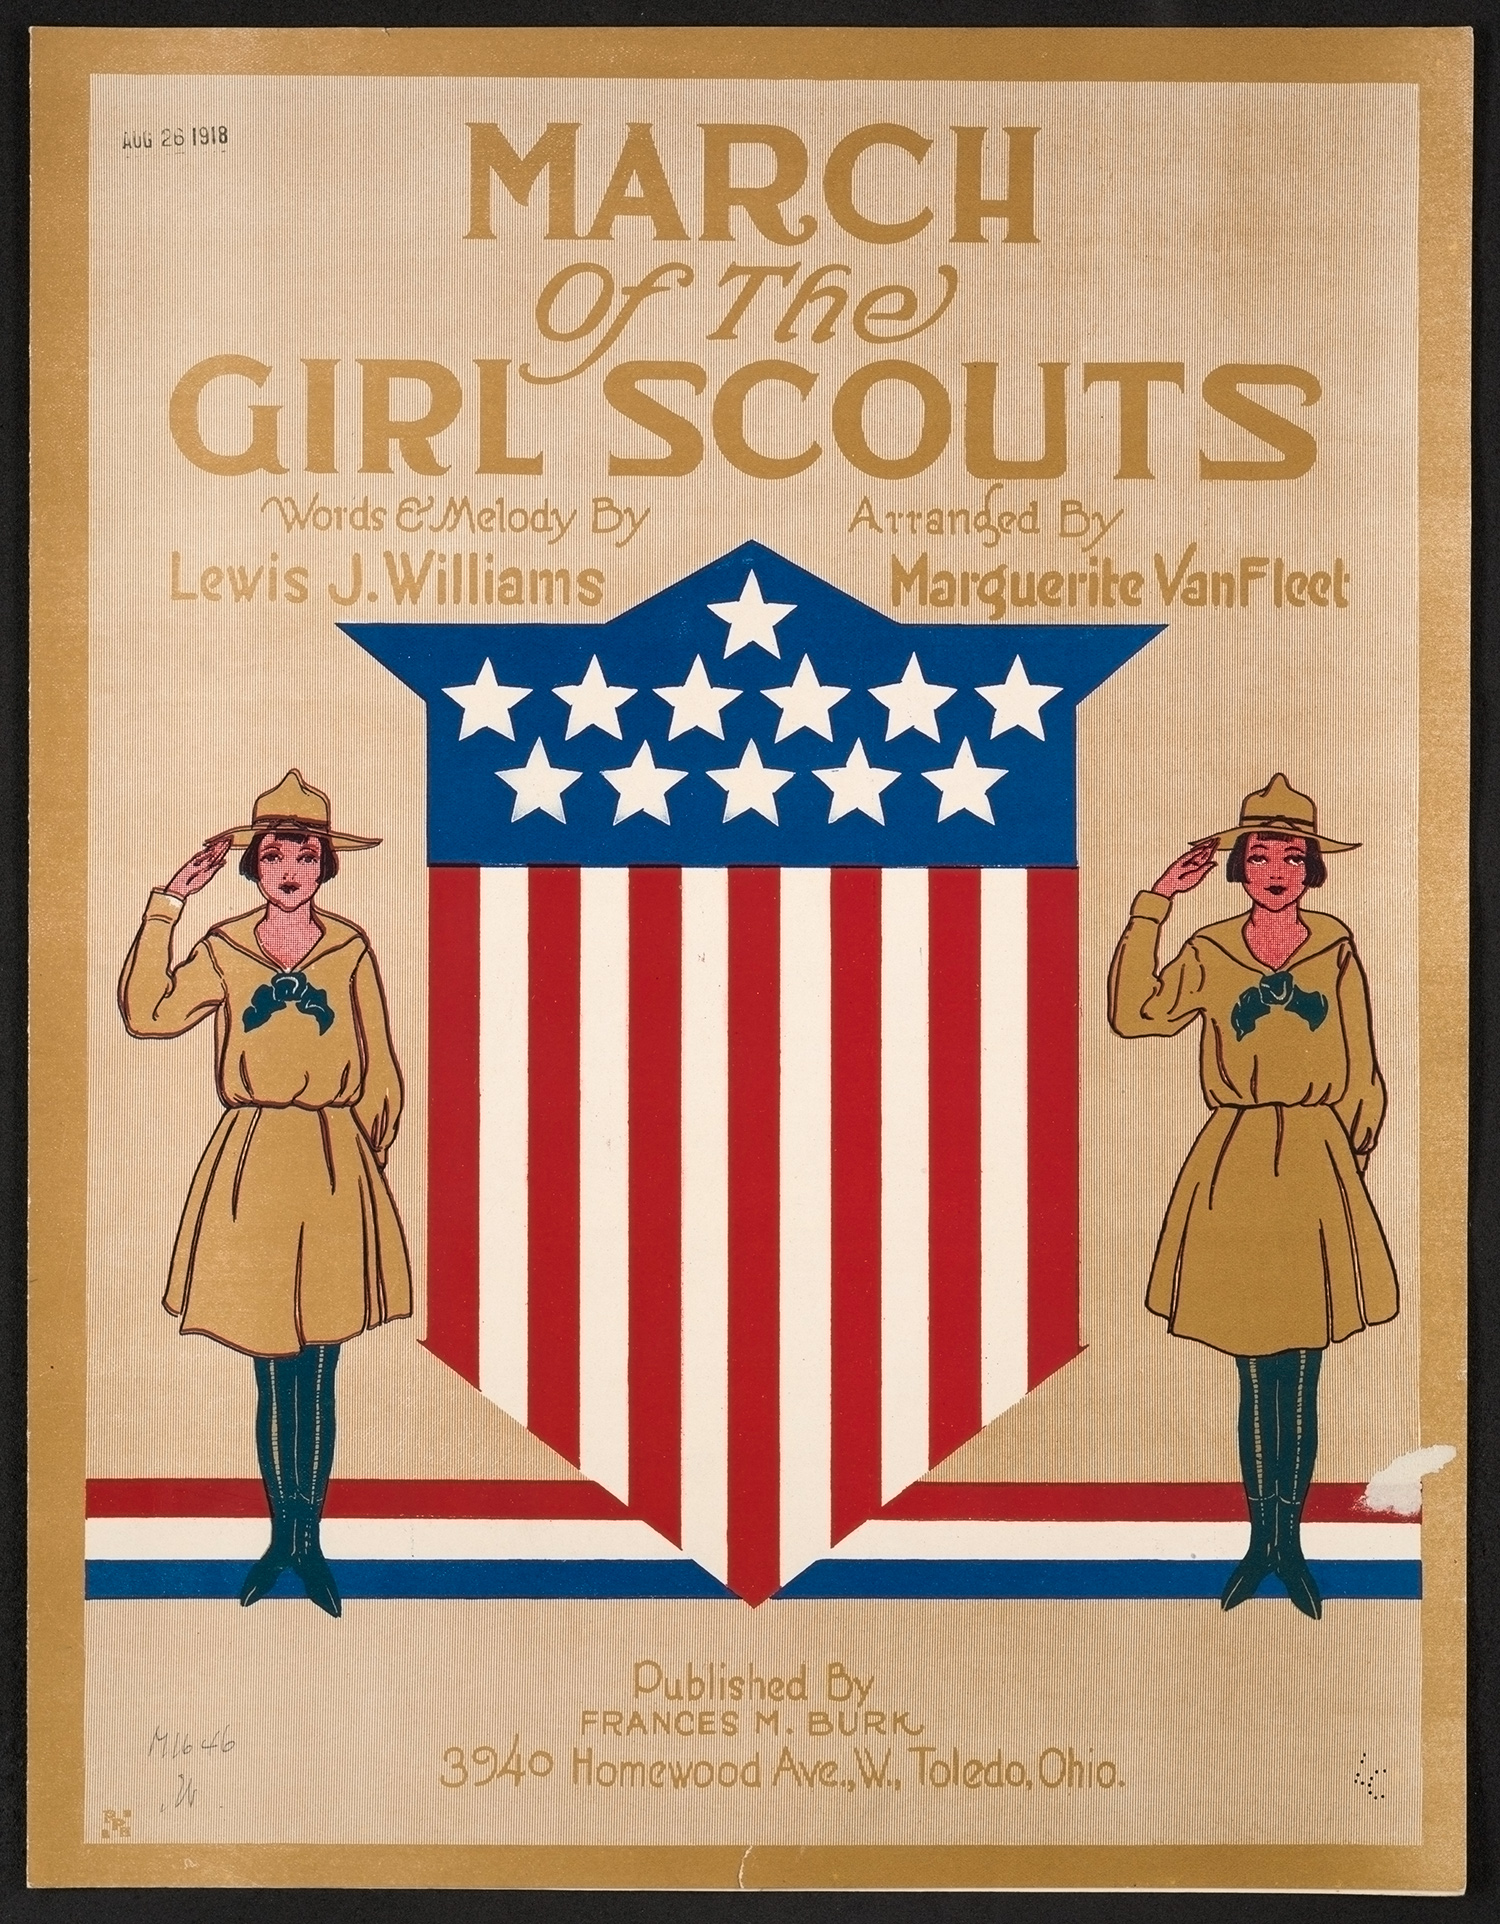 "Cover for published sheet music showing a U.S. shield flanked by two uniformed Girl Scouts, saluting, with text that reads, ""March of the Girl Scouts. Words and Melody by Lewis J. Williams. Arranged by Marguerite VanFleet. Published by Frances M. Burk, 3940 Homewood Ave, W., Toledo, Ohio."""